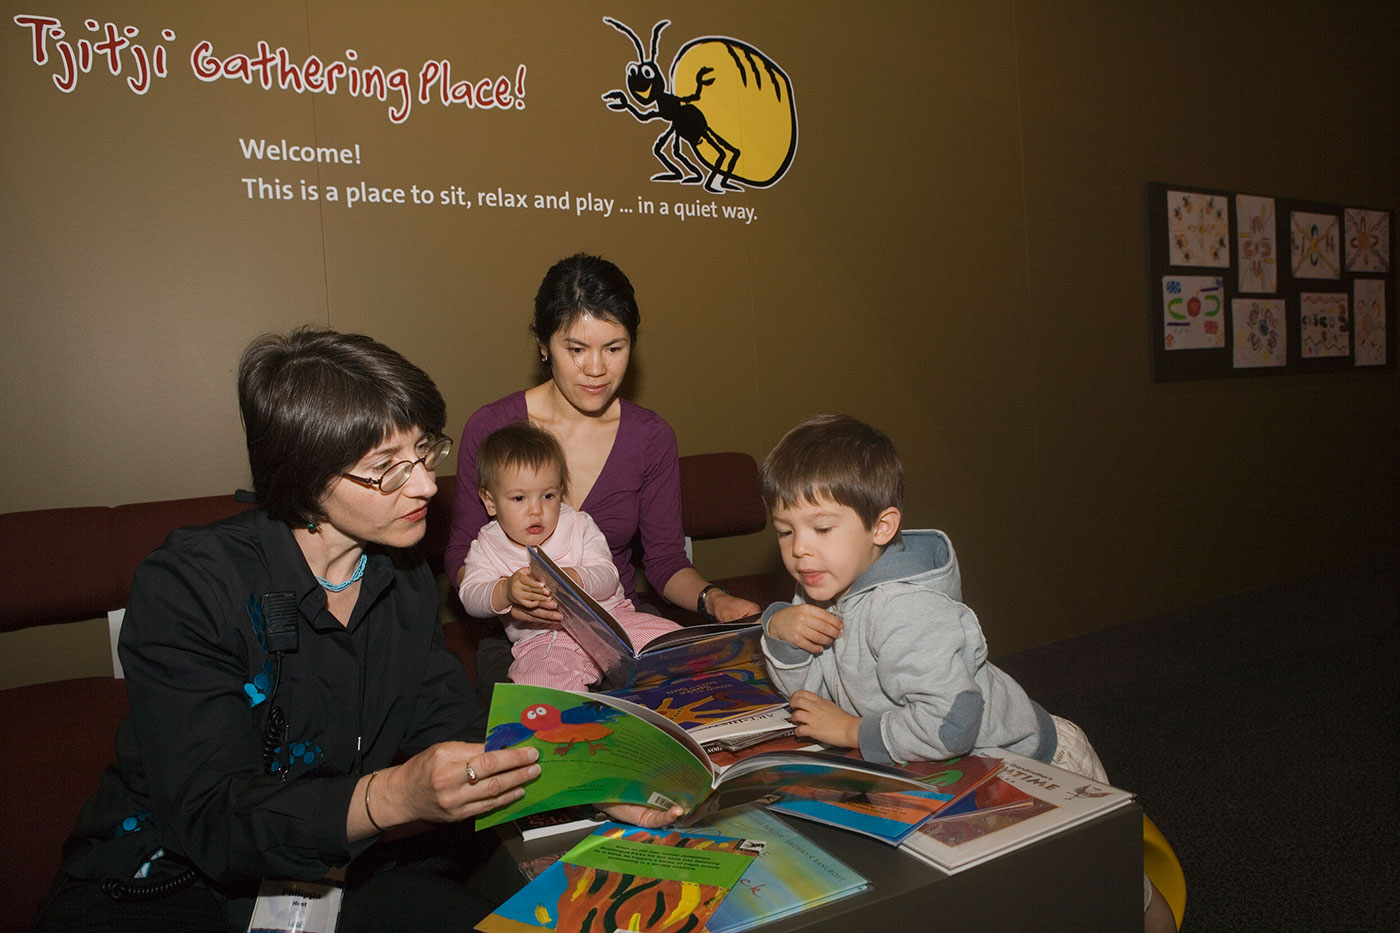 Museum host reads a book to a female visitor and two young children in the Tjitji Gathering Place. - click to view larger image